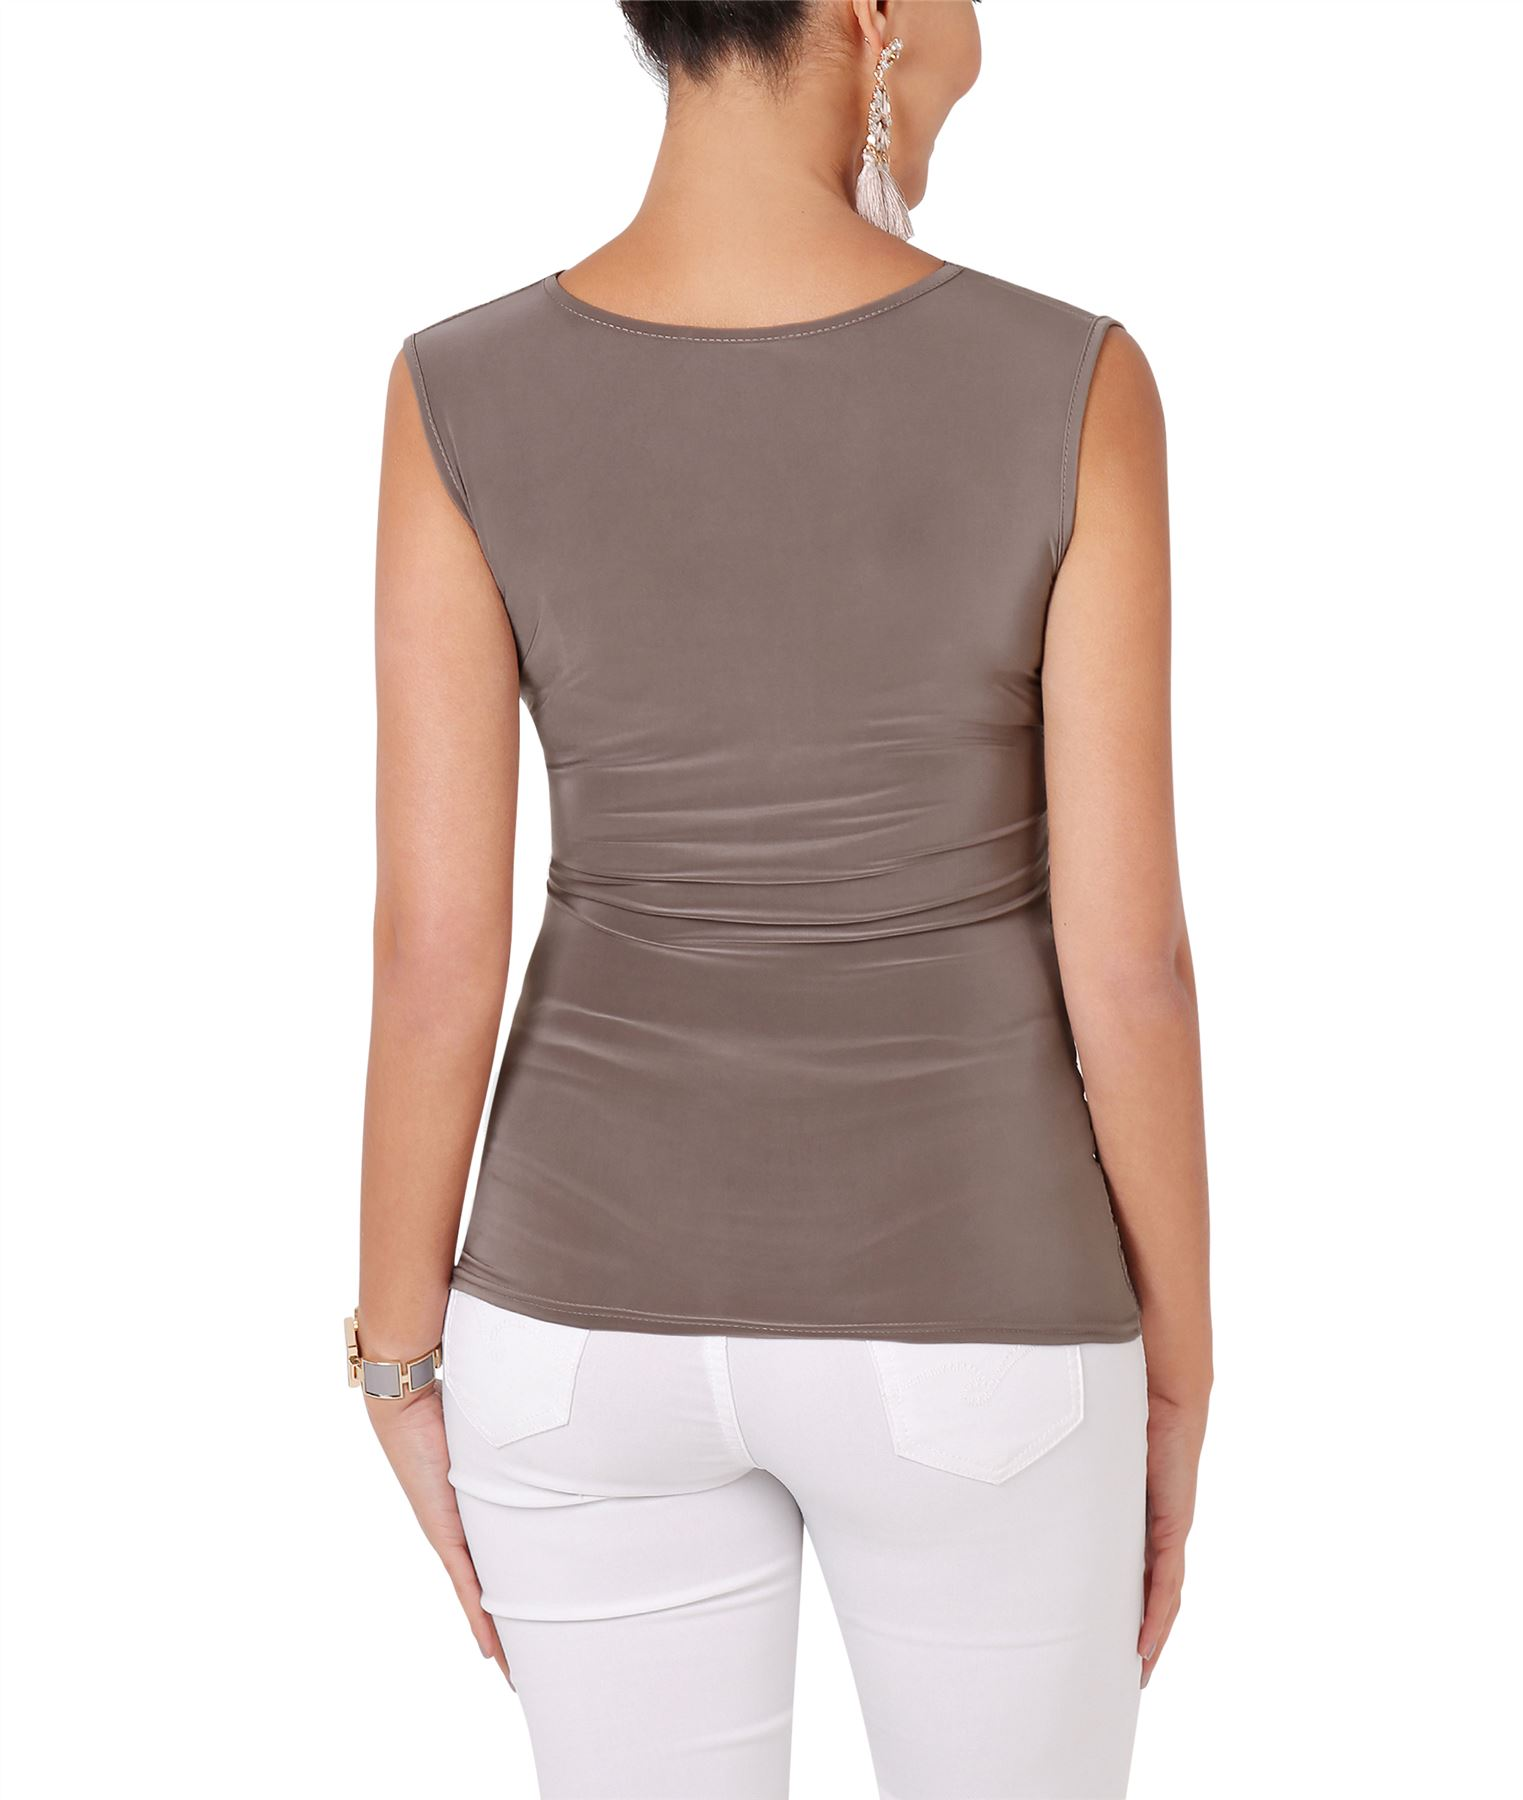 Womens-Wrap-Blouse-V-Neck-Sleeveless-T-Shirt-Evening-Tops-Stretch-Ruched-Party thumbnail 10